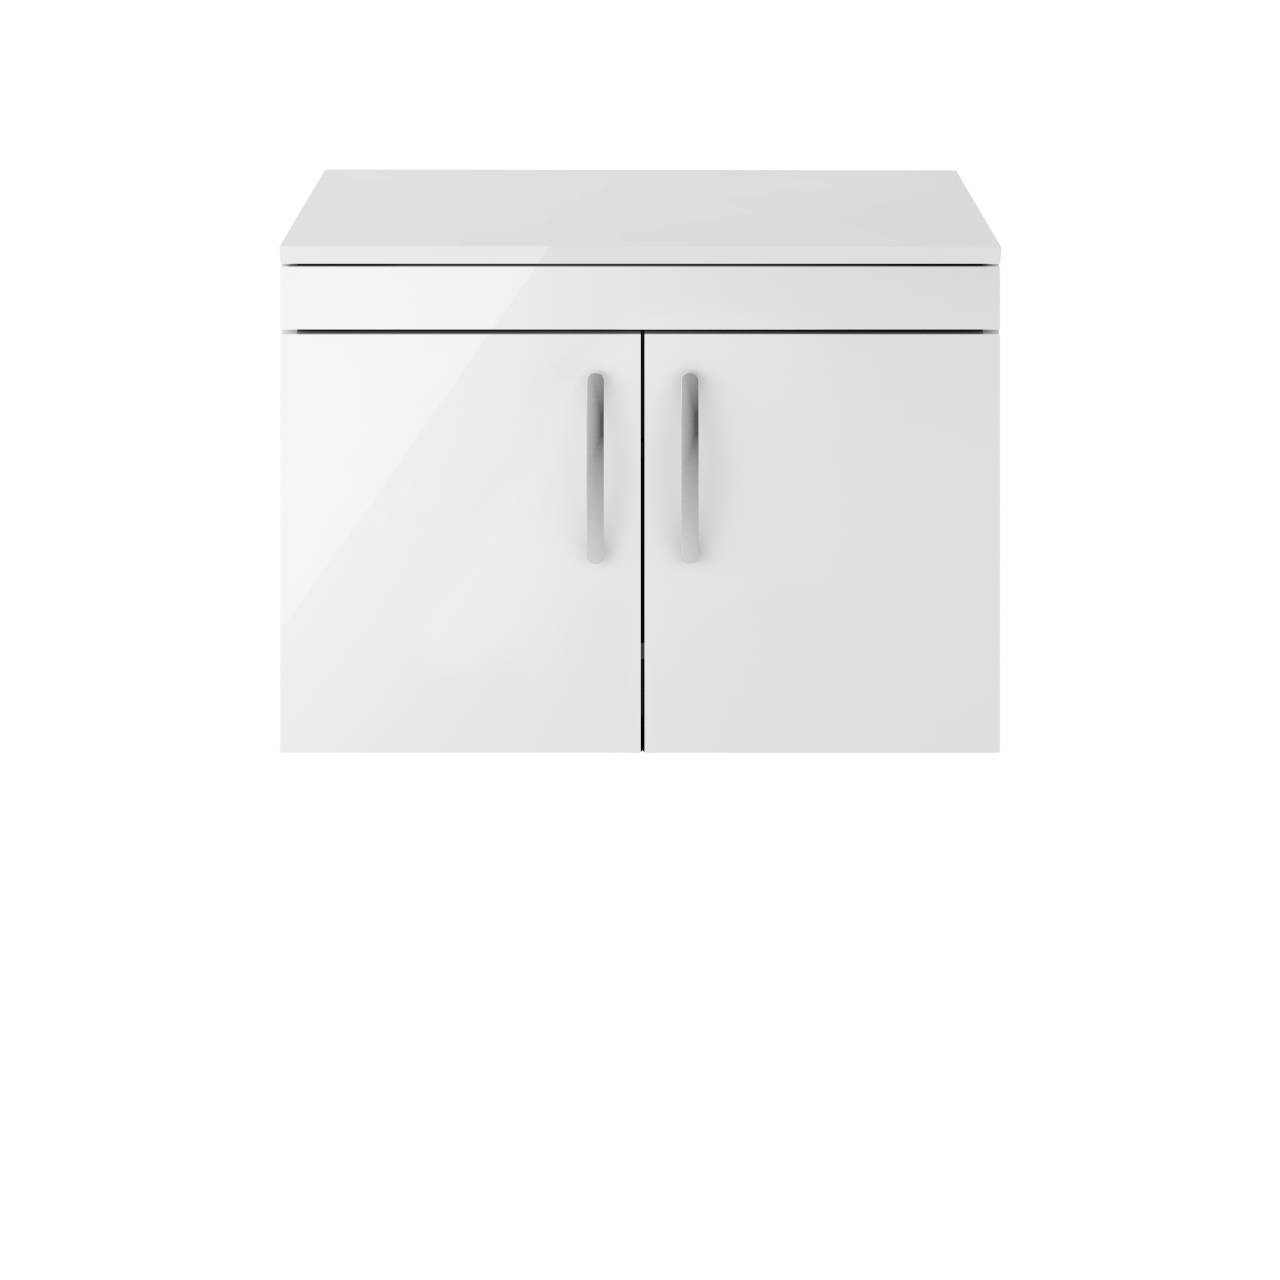 Premier Athena Gloss White 800mm Wall Hung 2 Door Vanity Unit with Worktop - ATH102W